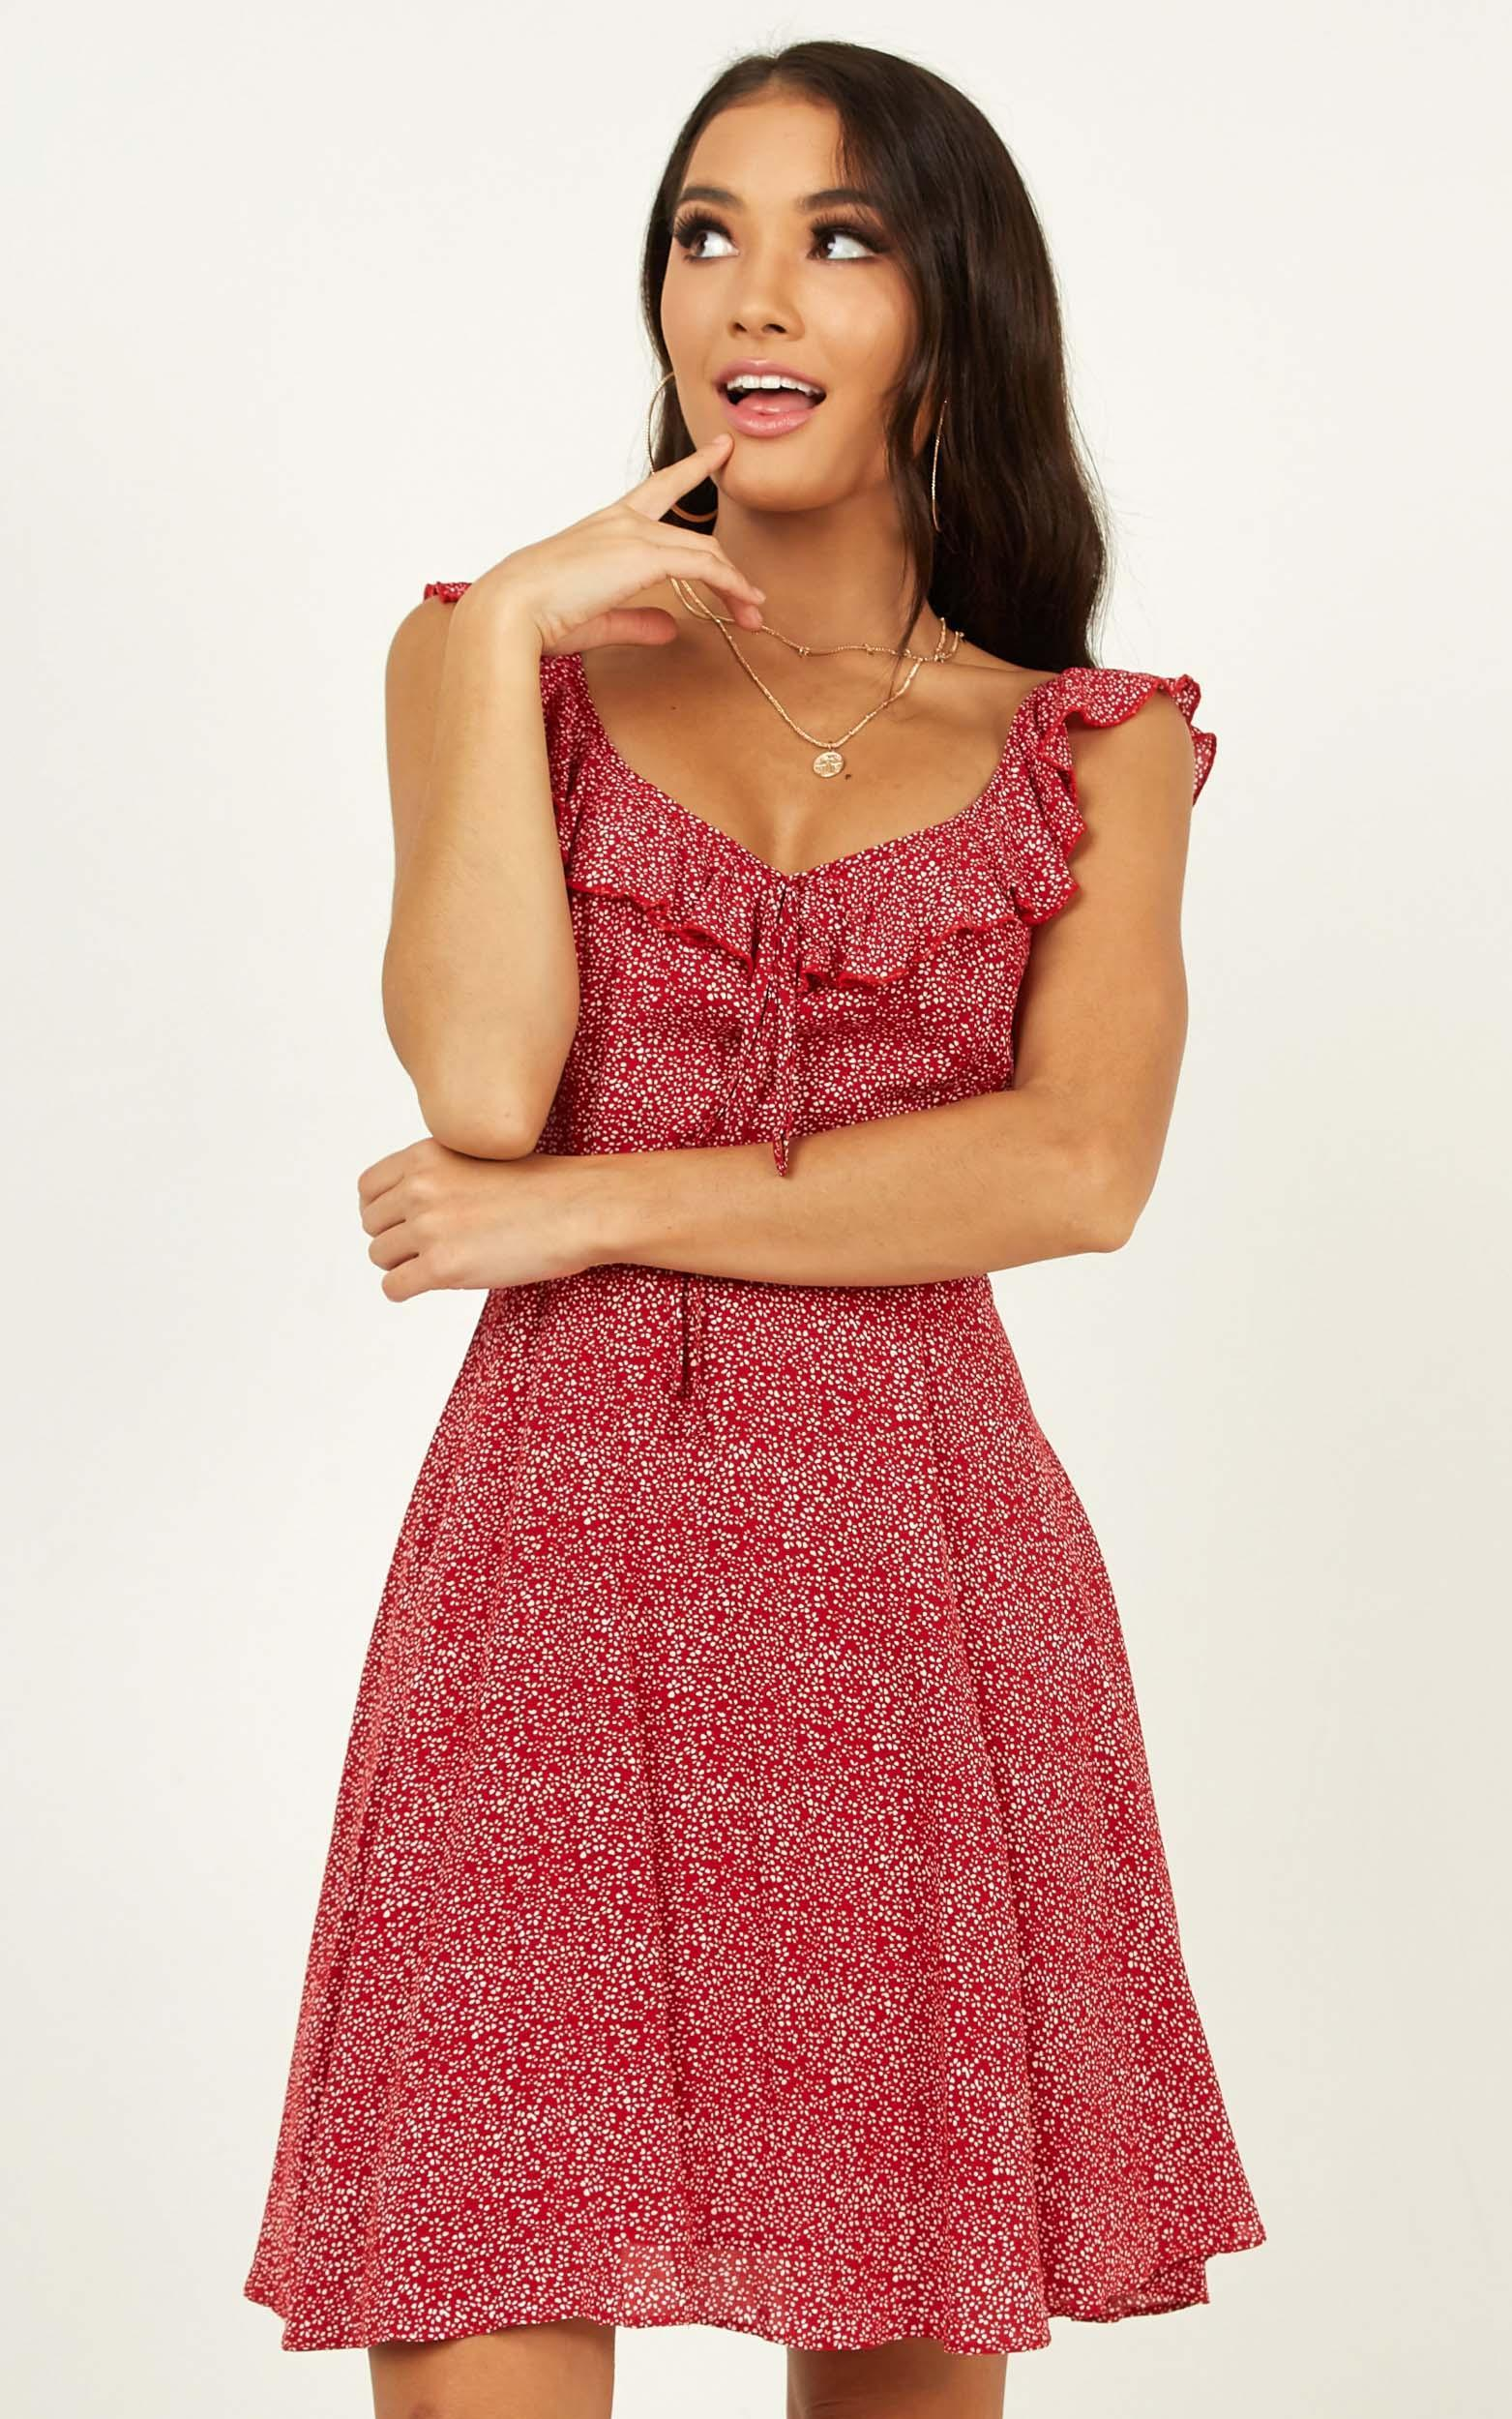 Not My Issue Dress in red floral - 20 (XXXXL), Red, hi-res image number null